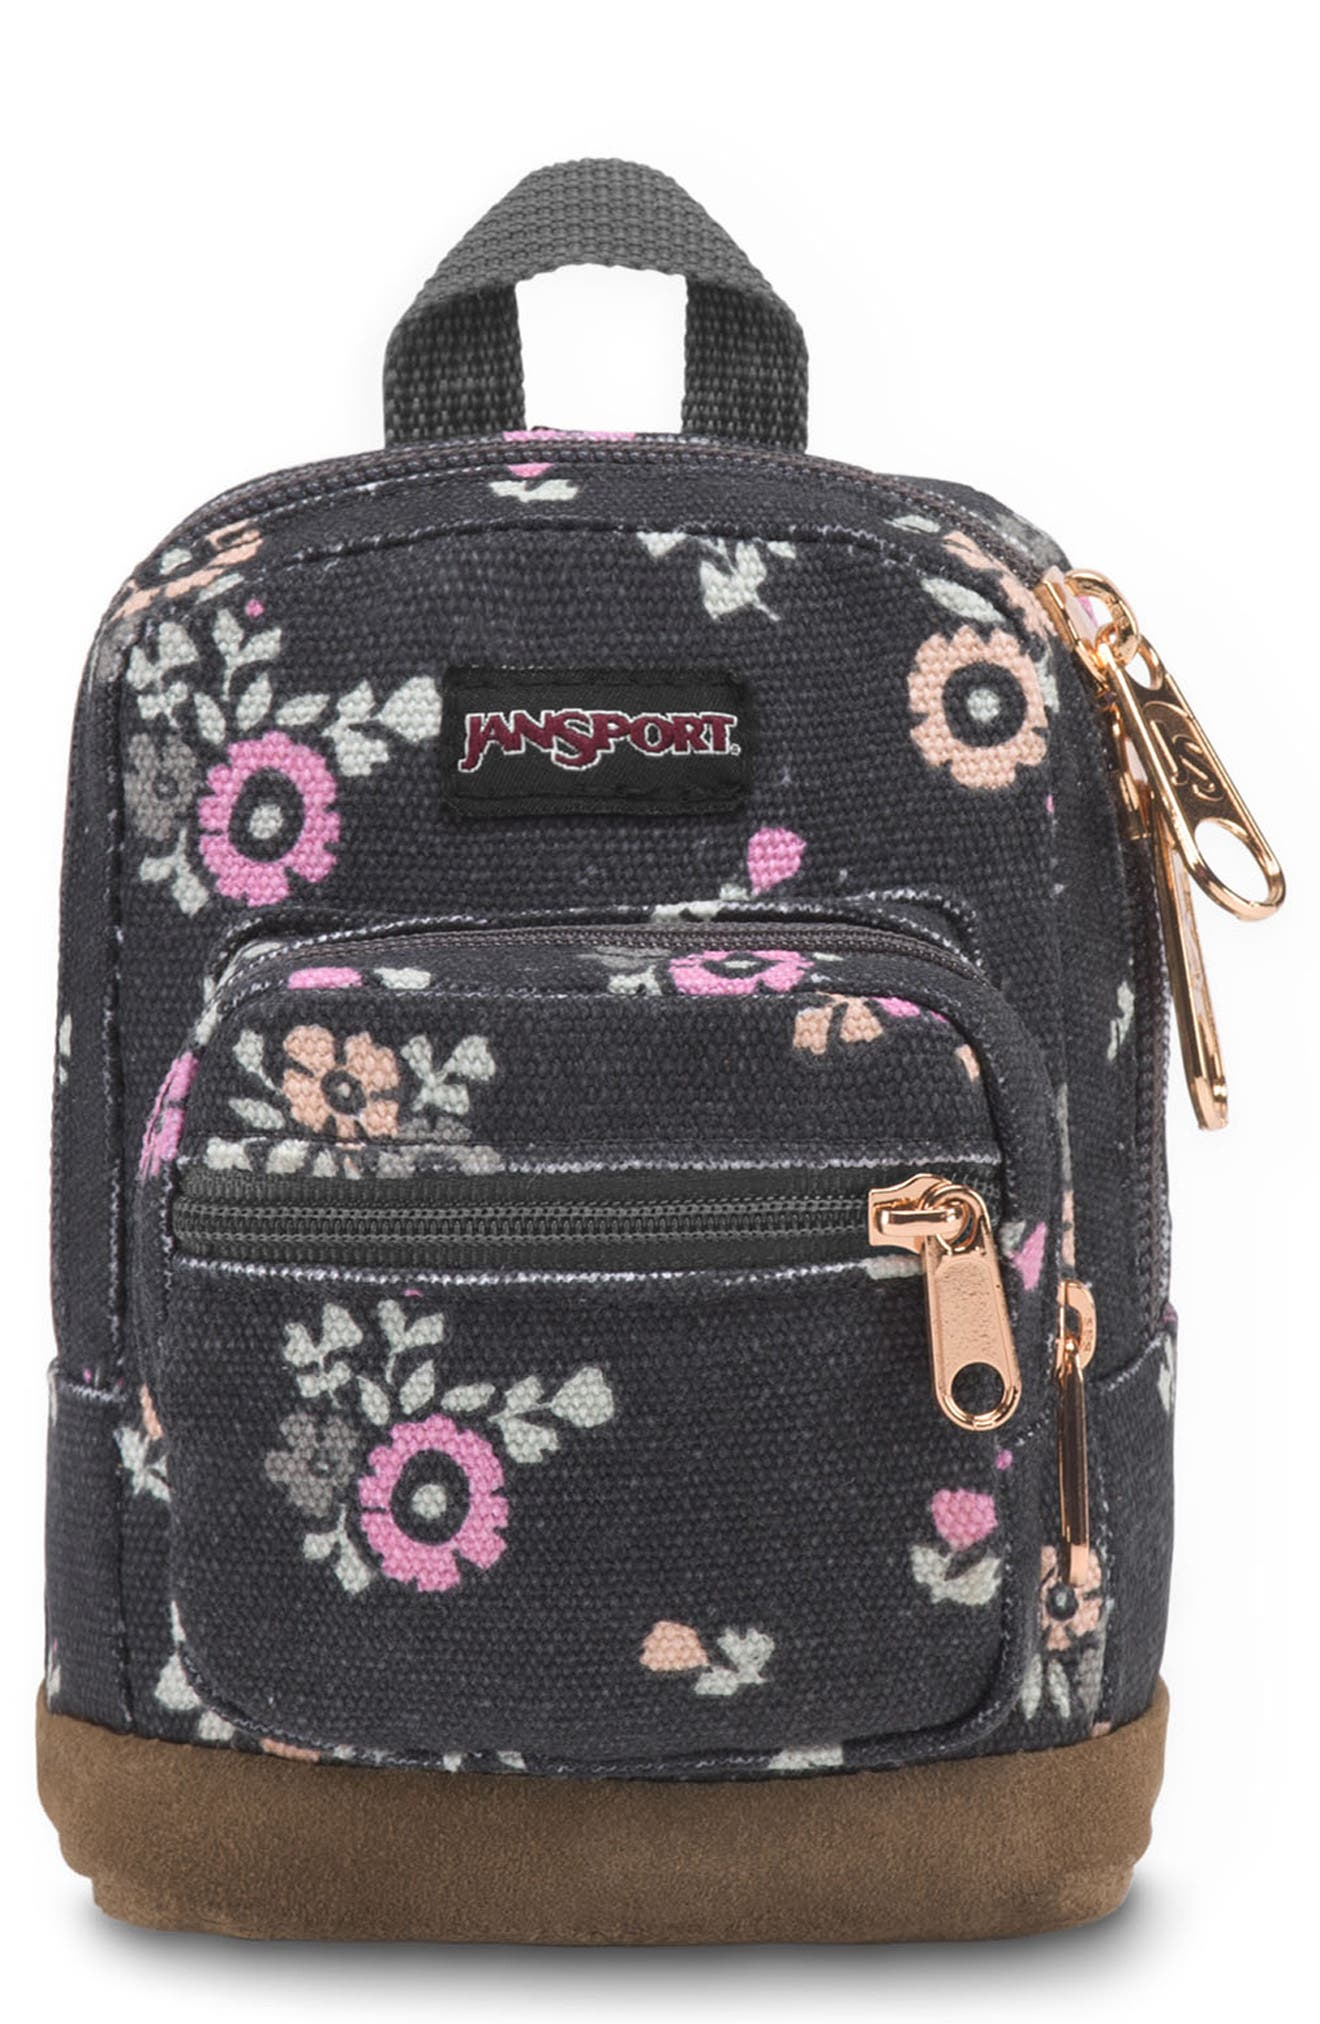 Right Pouch Mini Backpack,                             Main thumbnail 1, color,                             020